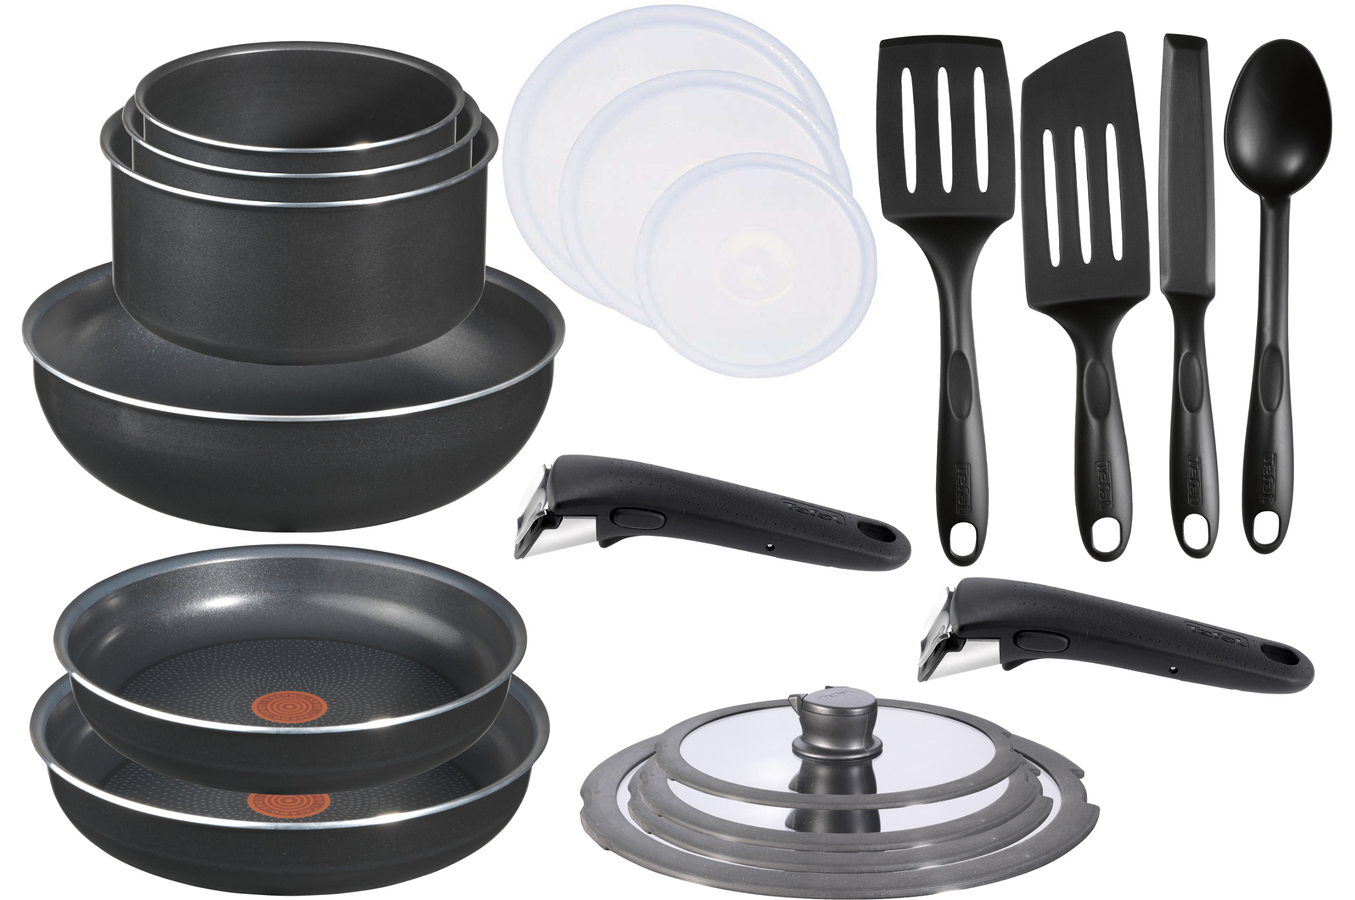 Casserole tefal ingenio 5 ptfe 20 pieces l0361405 set - Batterie de cuisine pour plaque a induction ...